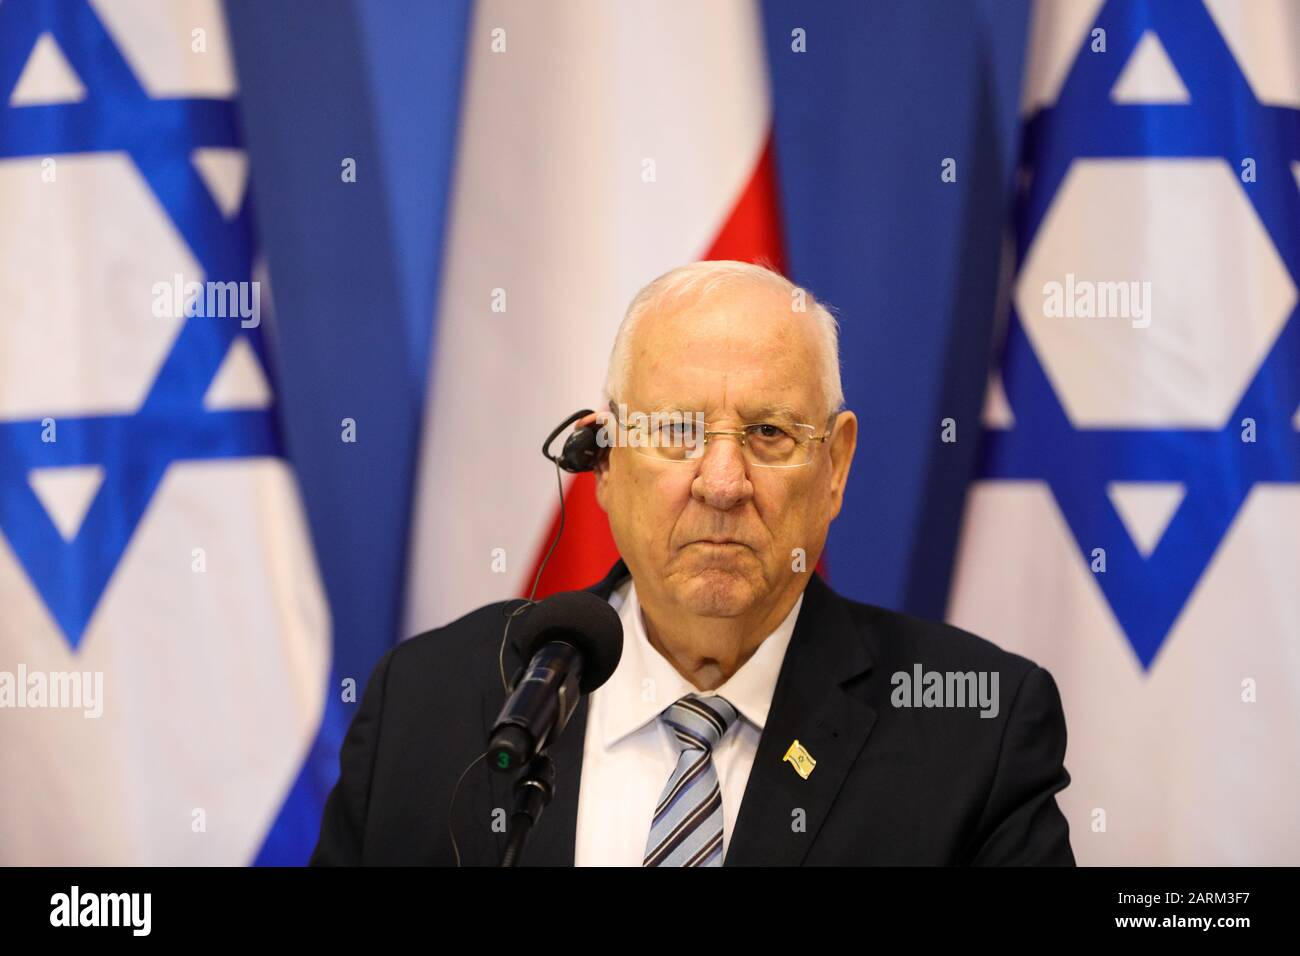 Oswiecim, Poland. 27th Jan, 2020. President of Israel Rueven Rivlin speaks during a press conference. 75th anniversary of the liberation of former Nazi German concentration camp Auschwitz-Birkenau. KL Auschwitz-Birkenau was liberated on 27 January 1945. Credit: SOPA Images Limited/Alamy Live News Stock Photo